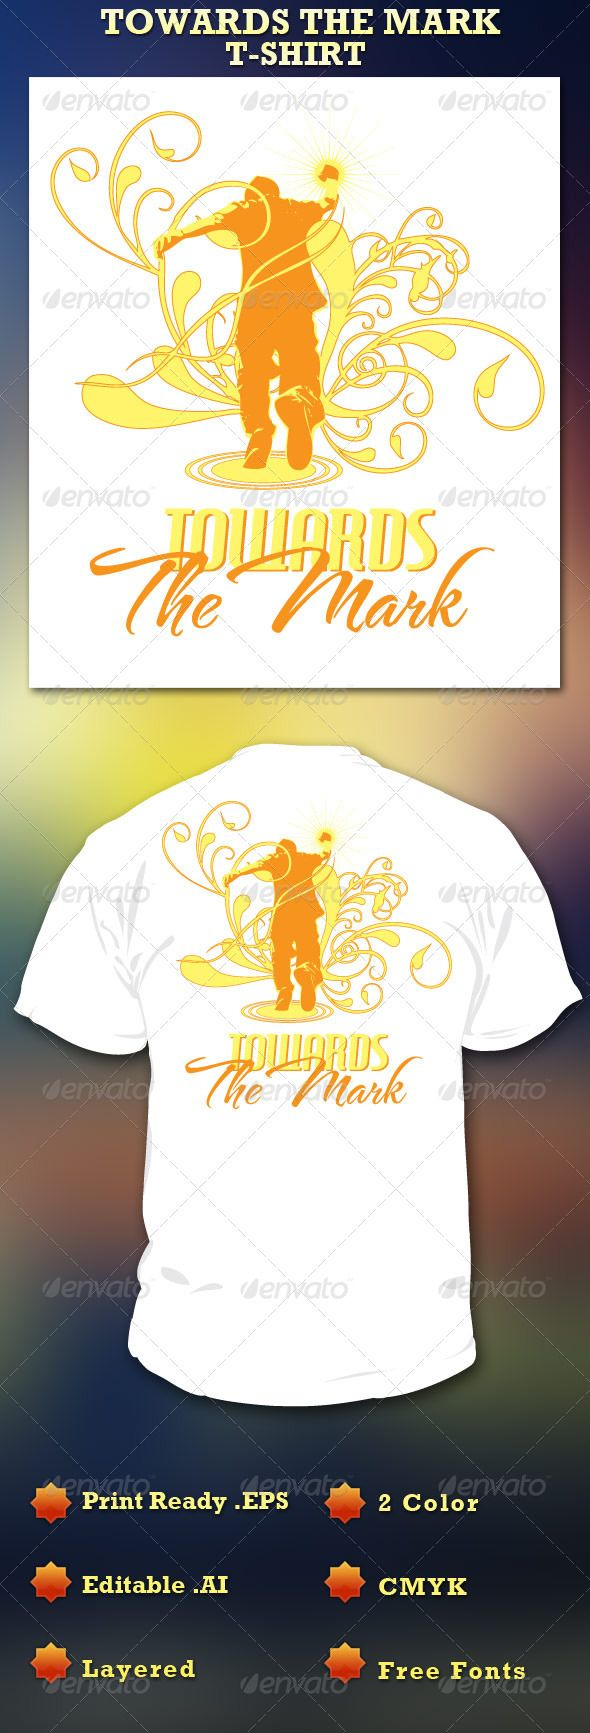 1000+ images about T-Shirt Design Template on Pinterest ...